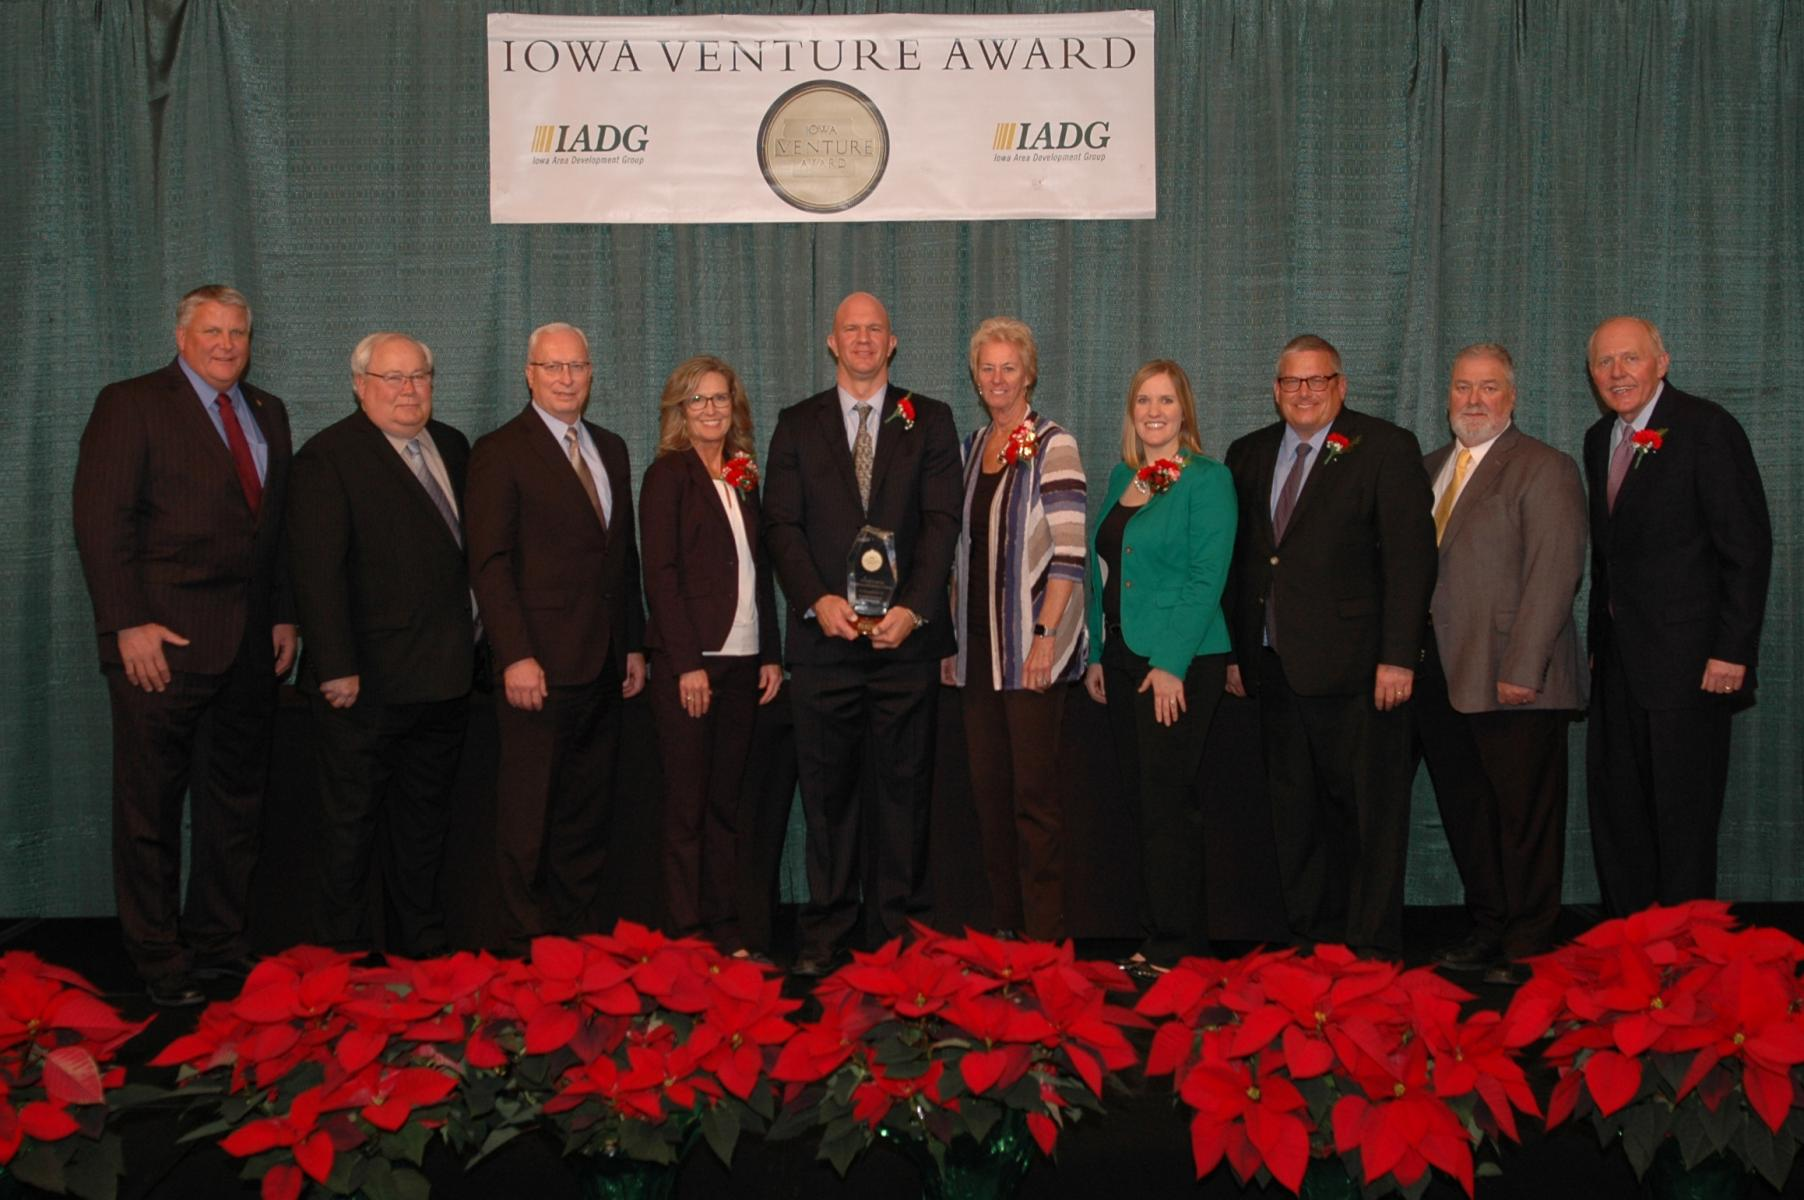 Left to right: Jed Skogerboe, Jerry Beck, Rick Olesen of Iowa Lakes Electric Cooperative; Kellie Beneke, Josh Nelson, Candie Nelson, Greta Rouse of Great Lakes Communication Corp.; Iowa Secretary of Agriculture Bill Northey; Jack Schoon of Iowa Lakes Elec